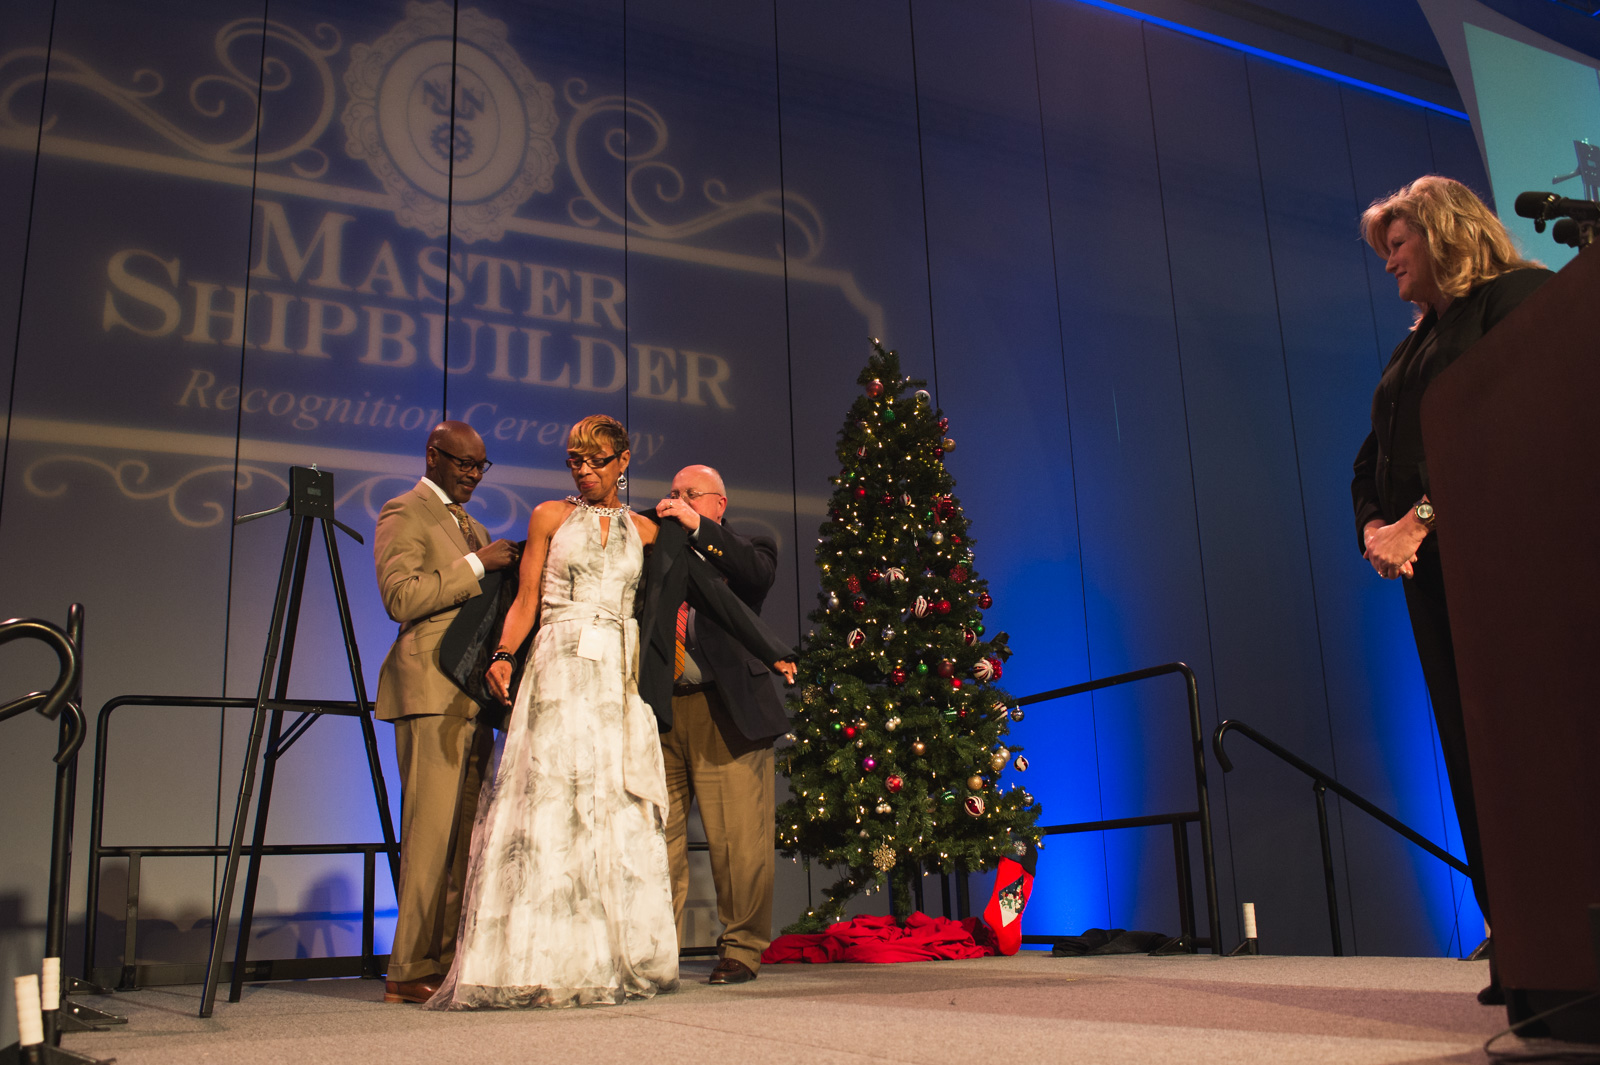 Newport News Shipbuilding recognizes employees with 40 or more years of continuous service with the prestigious title of Master Shipbuilder. On Dec. 6, NNS honored 1,161 Master Shipbuilders – including 359 shipbuilders who reached the milestone in 2017 – during an annual recognition ceremony.